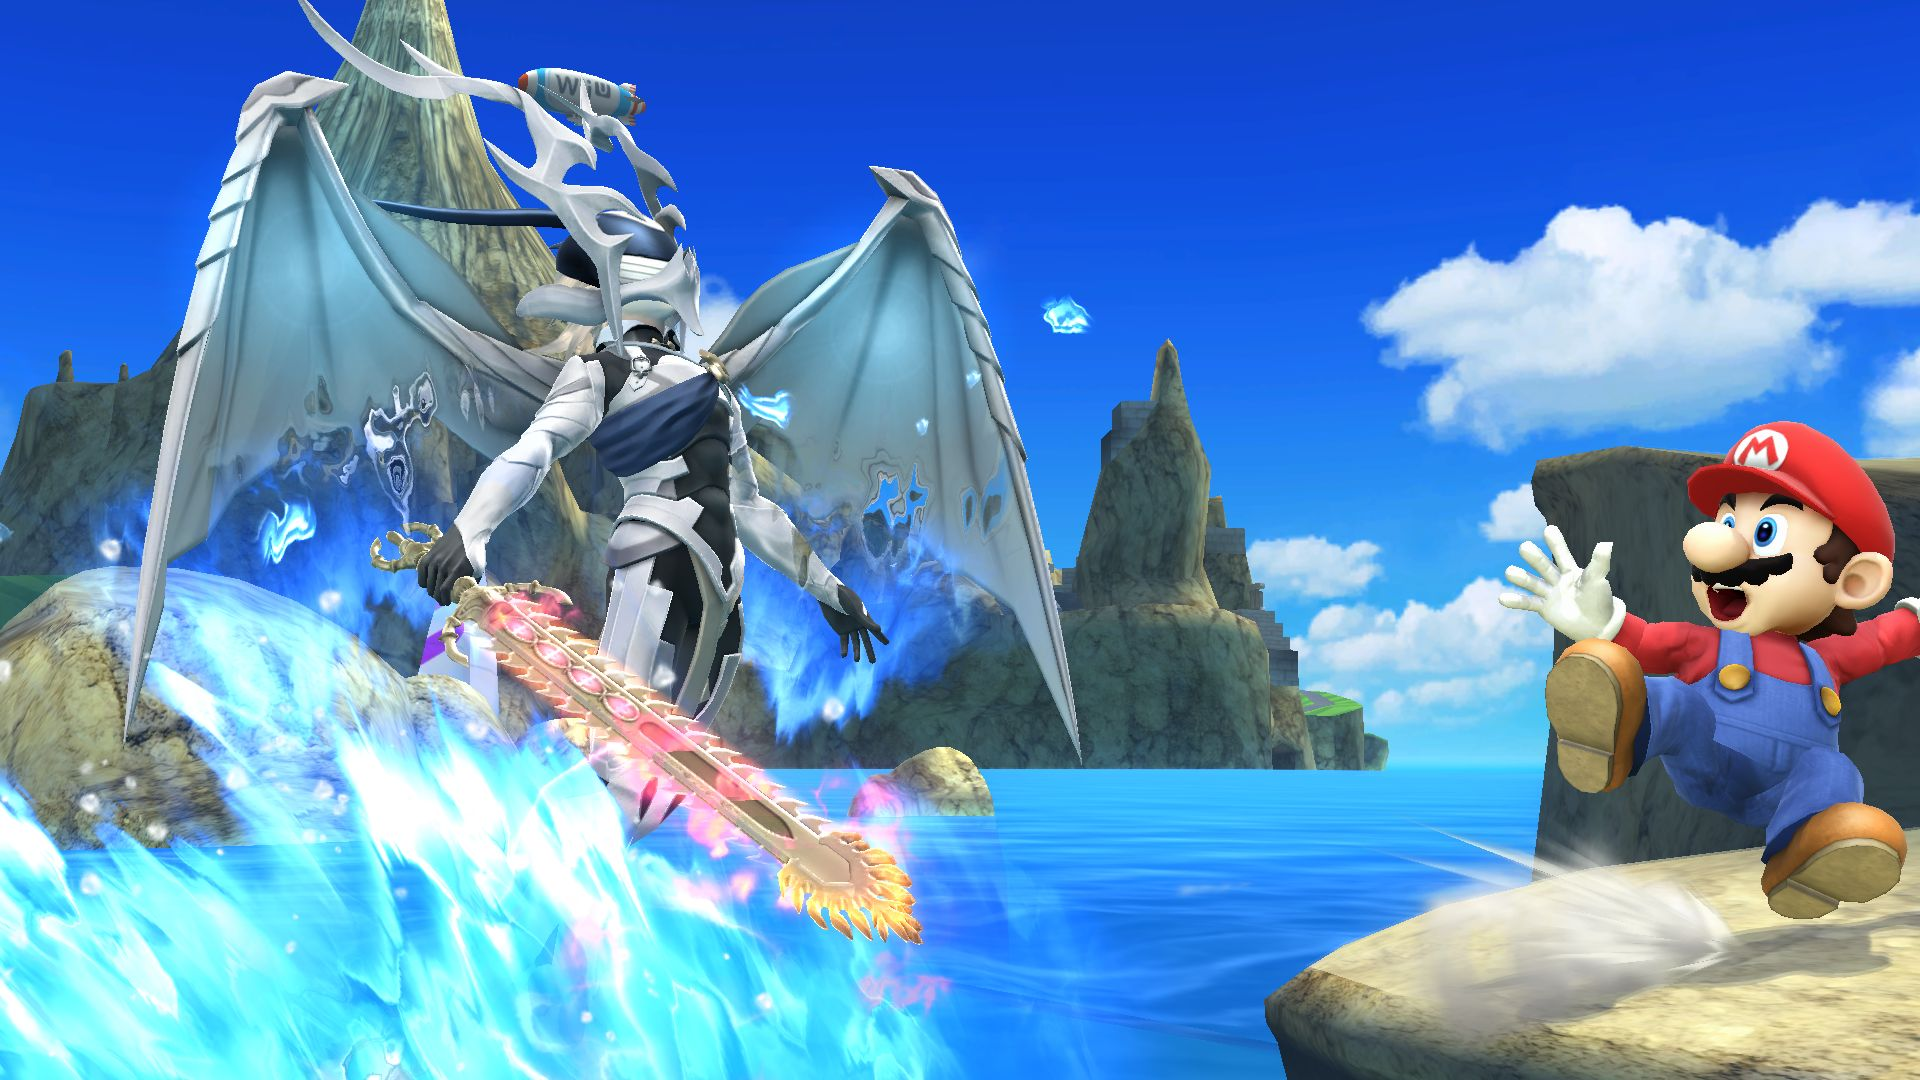 Super Smash Bros Wii U 3DS Screensartworks For